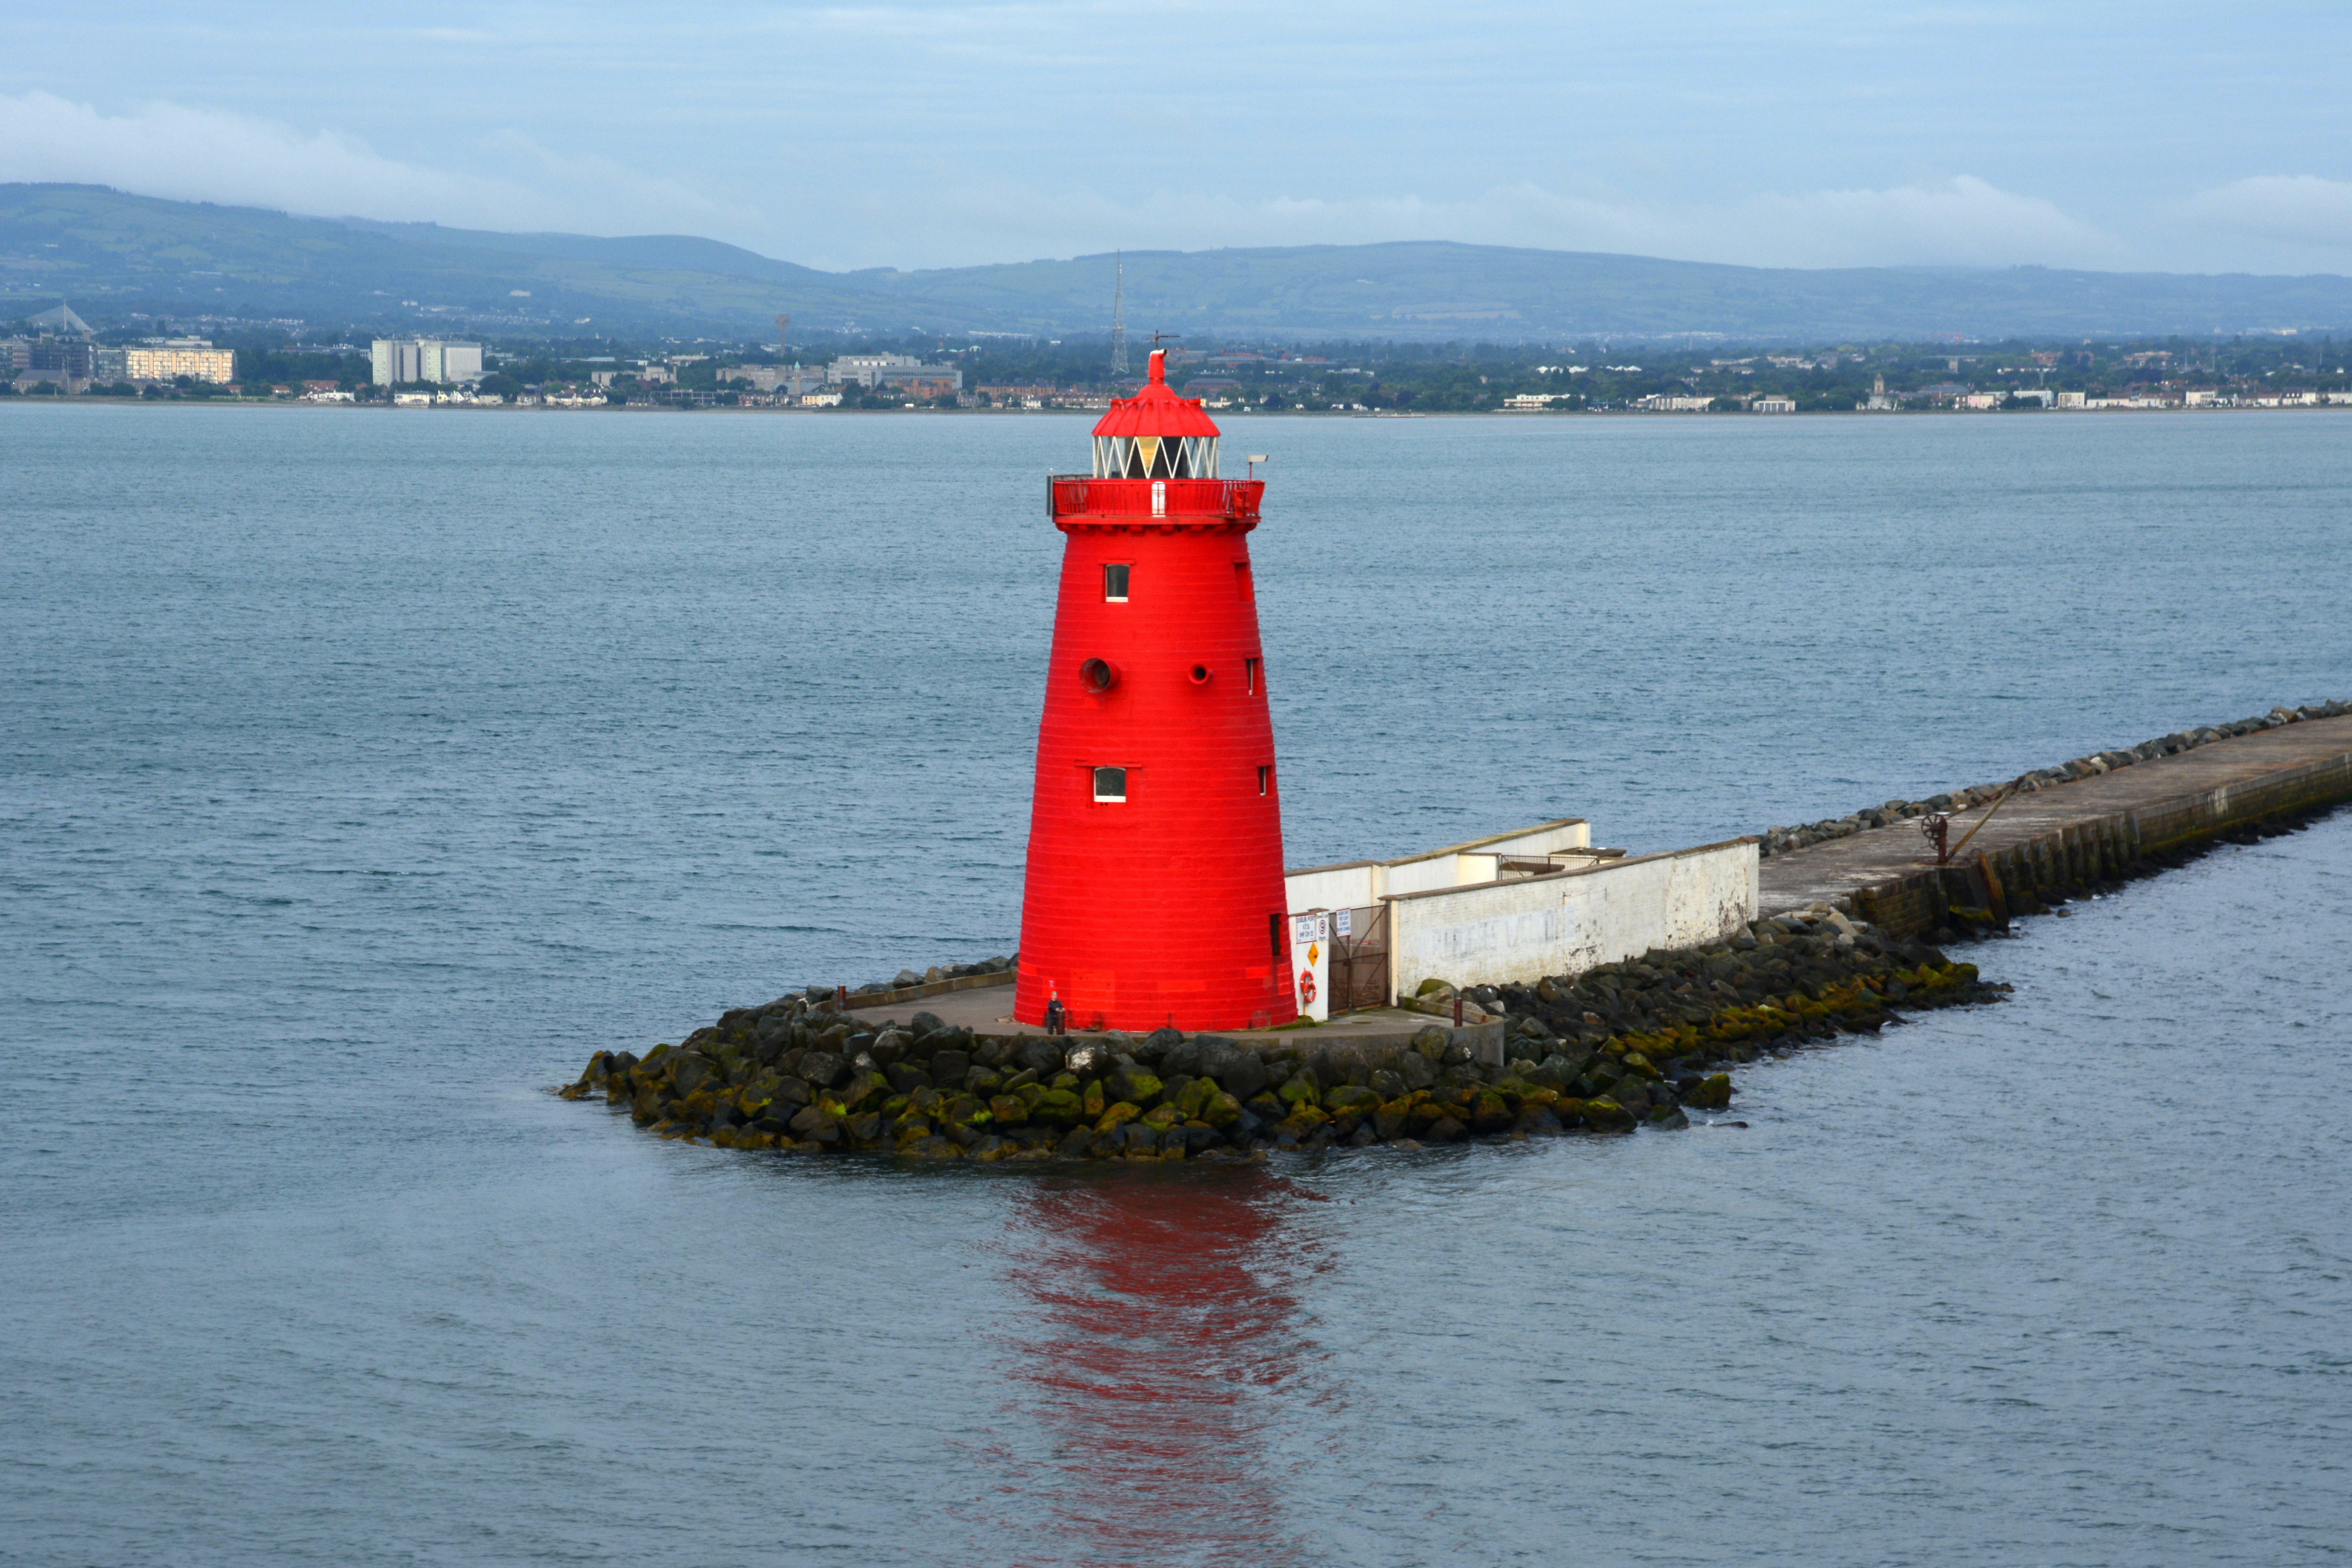 Poolbeg_lighthouse,_marking_the_sea_end_of_Great_Bull_Wall_at_the_entrance_of_Dublin_Port